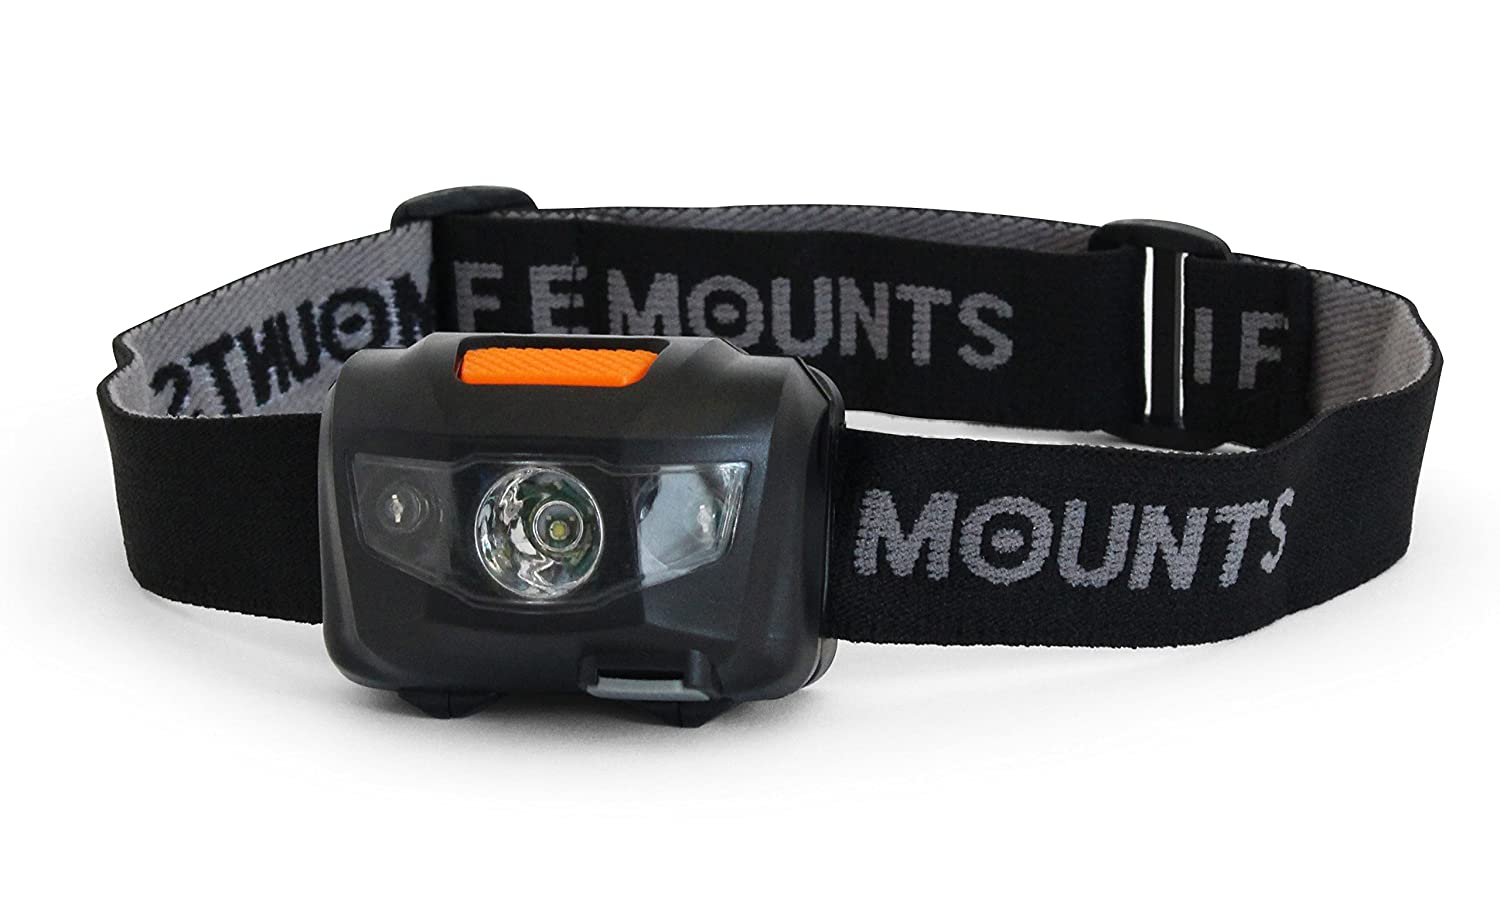 Life Mounts Rechargeable LED Headlamp with USB Car Charger Black